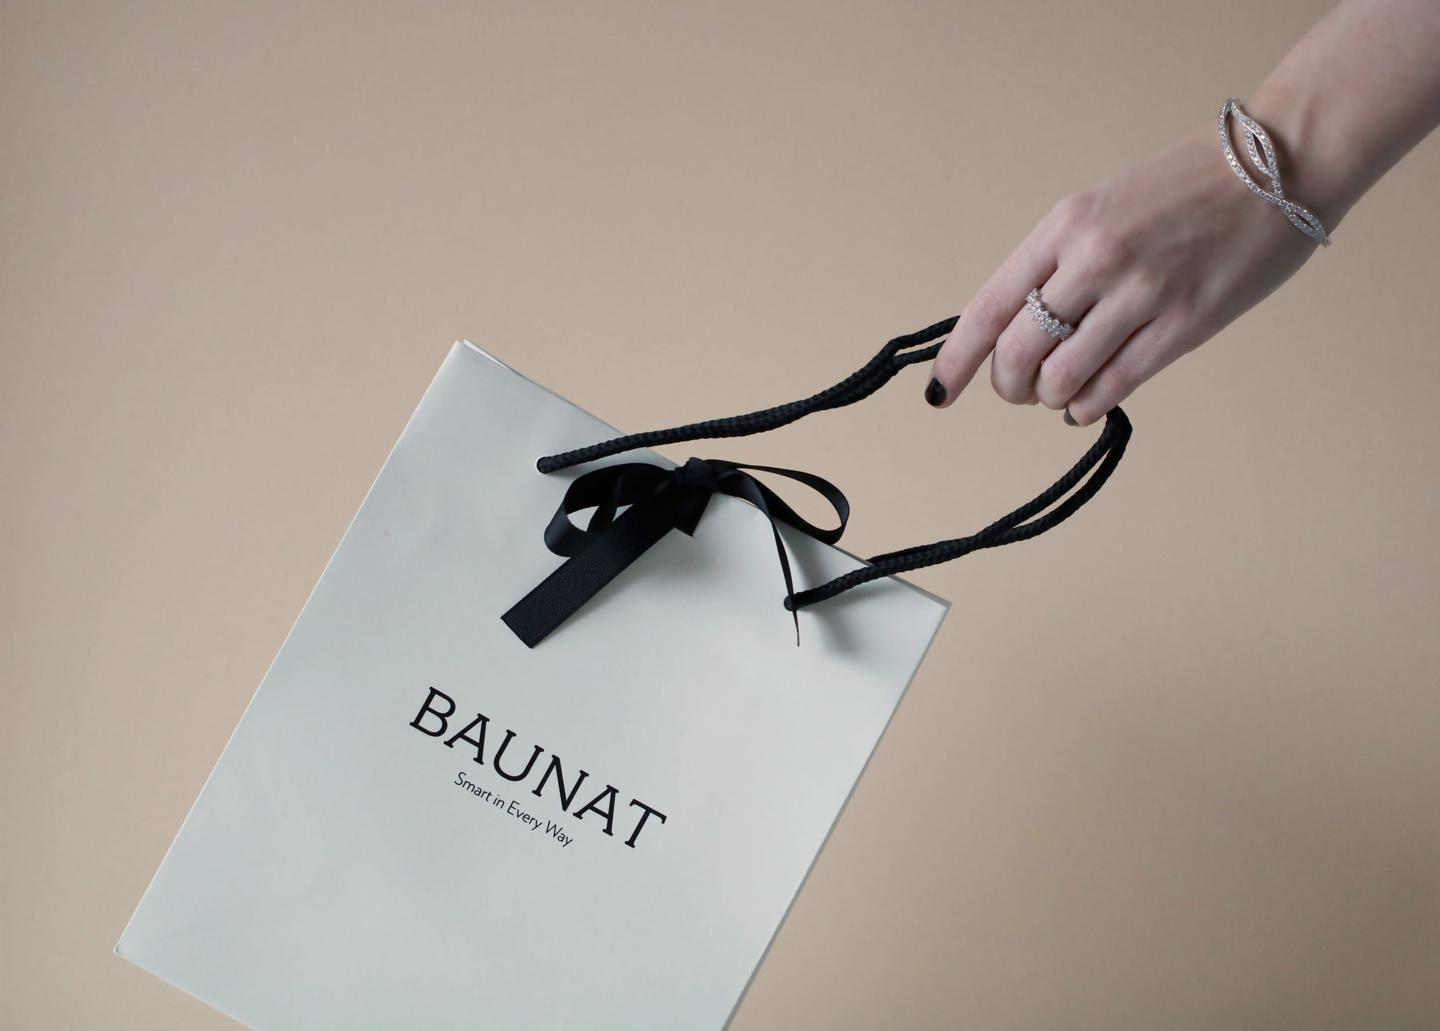 A must have bracelet that is elegantly packaged by BAUNAT.